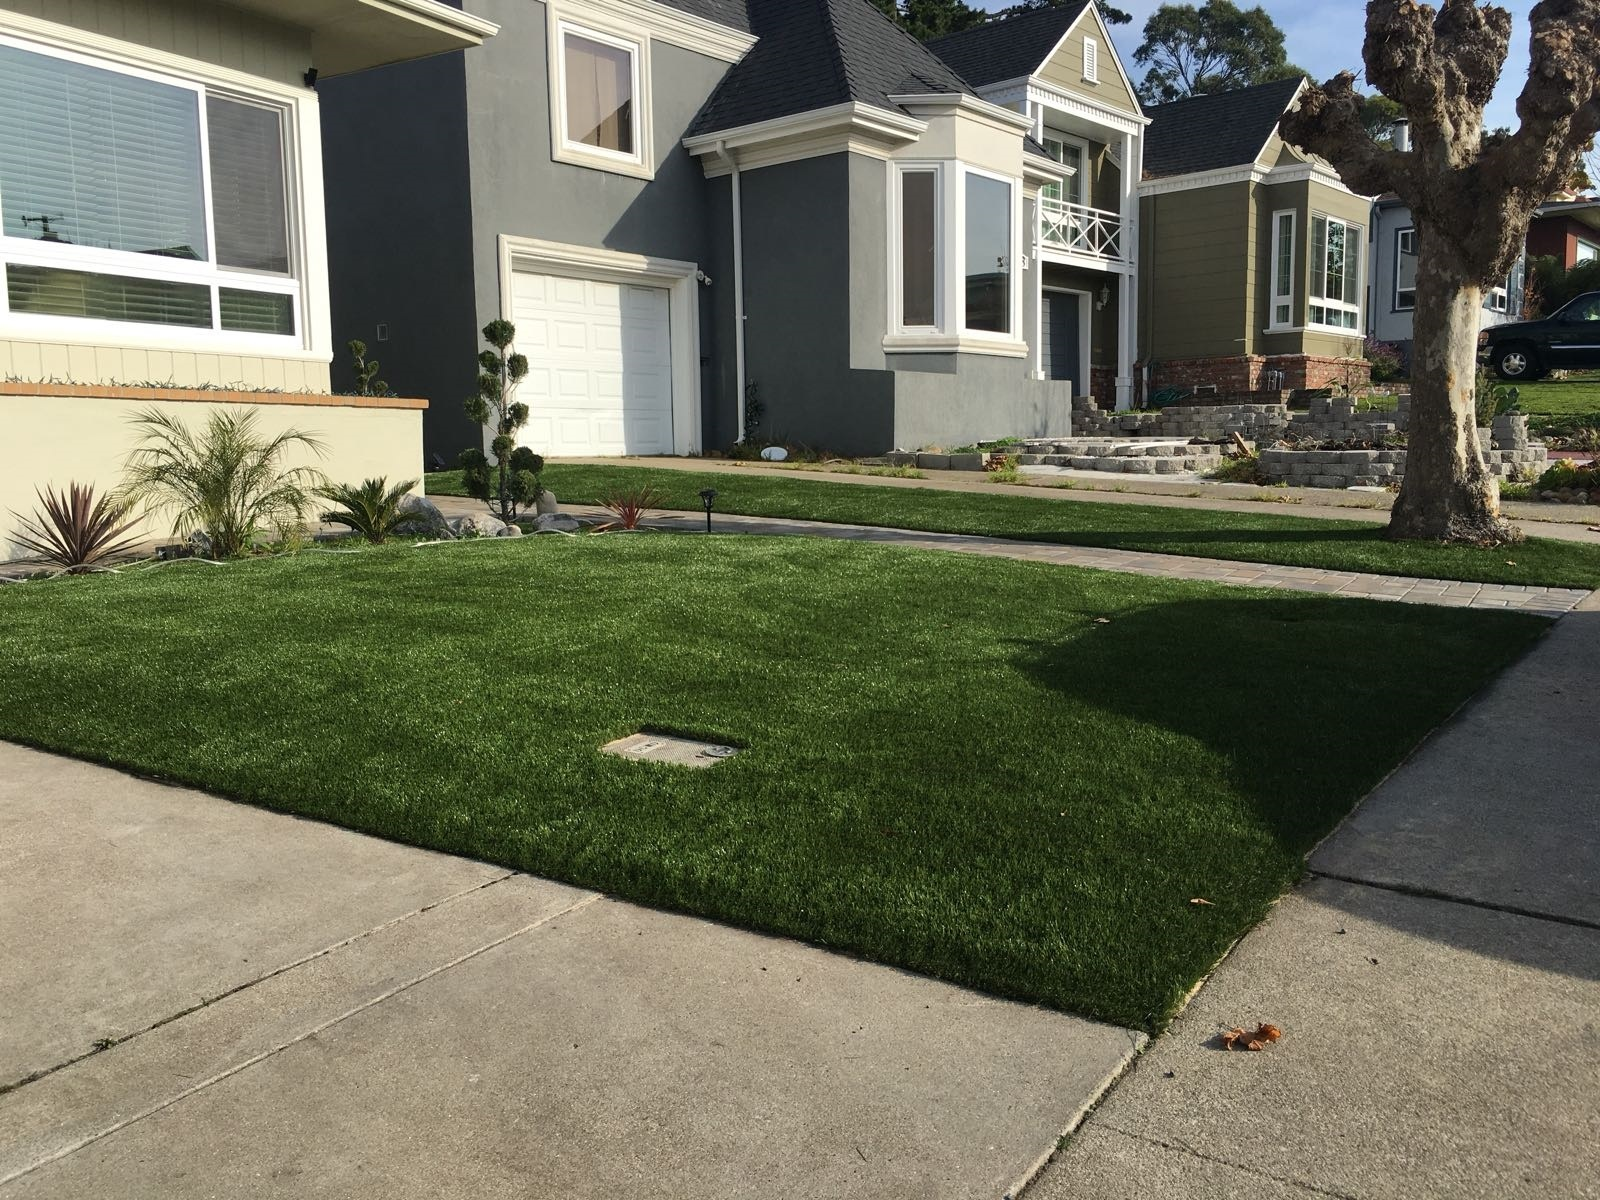 Synthetic grass installed in Daly City, california lawn